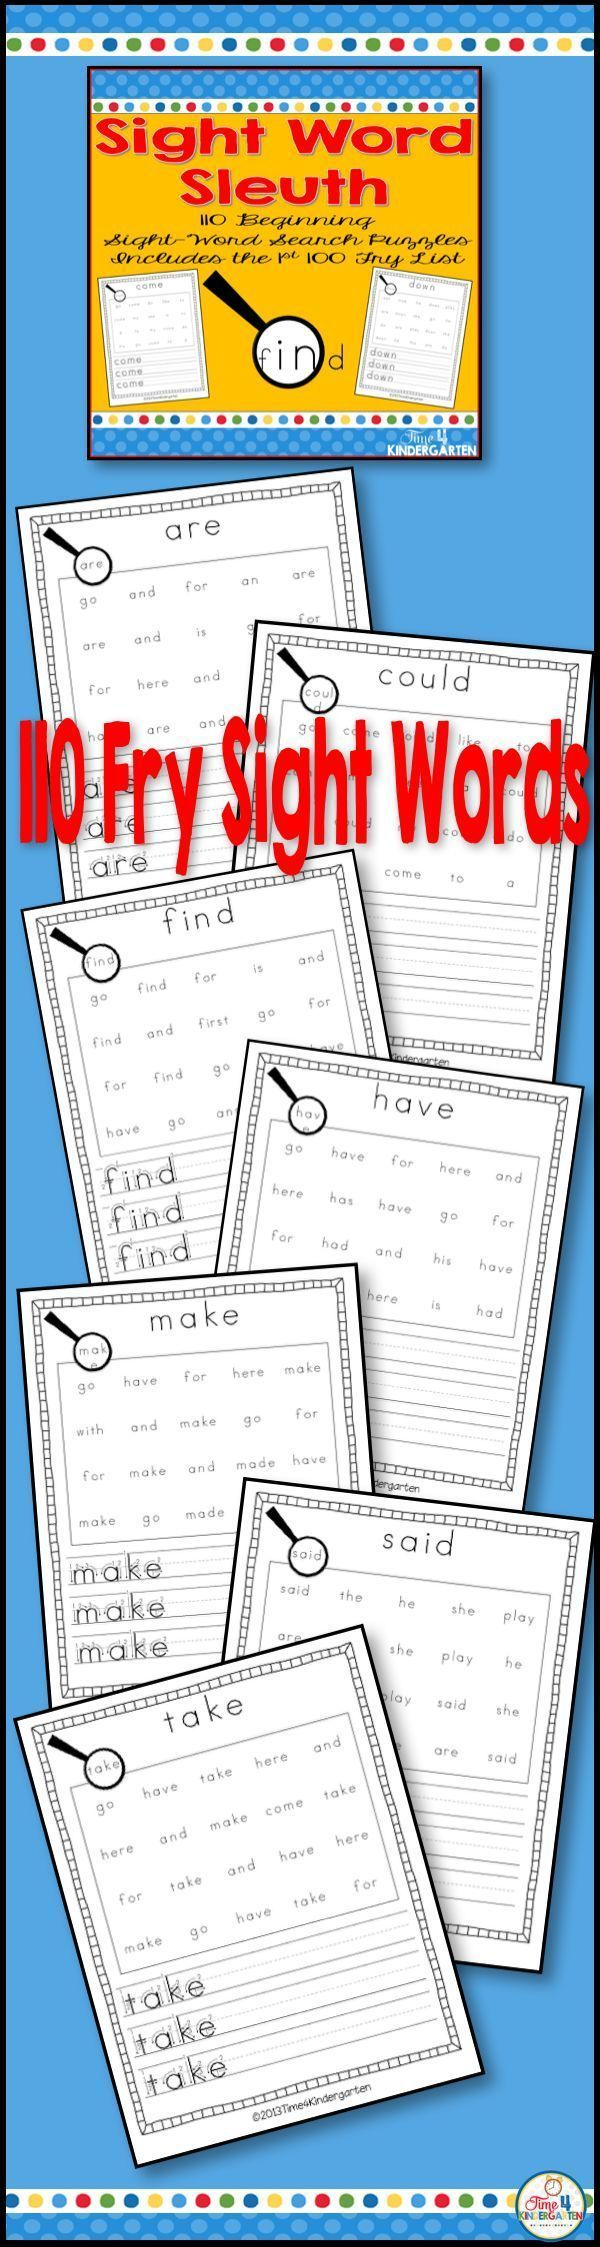 Sight Word Search Fry List for Kindergarten. This resource used the first sight words from the Fry list. students search for the words then practice writing the words